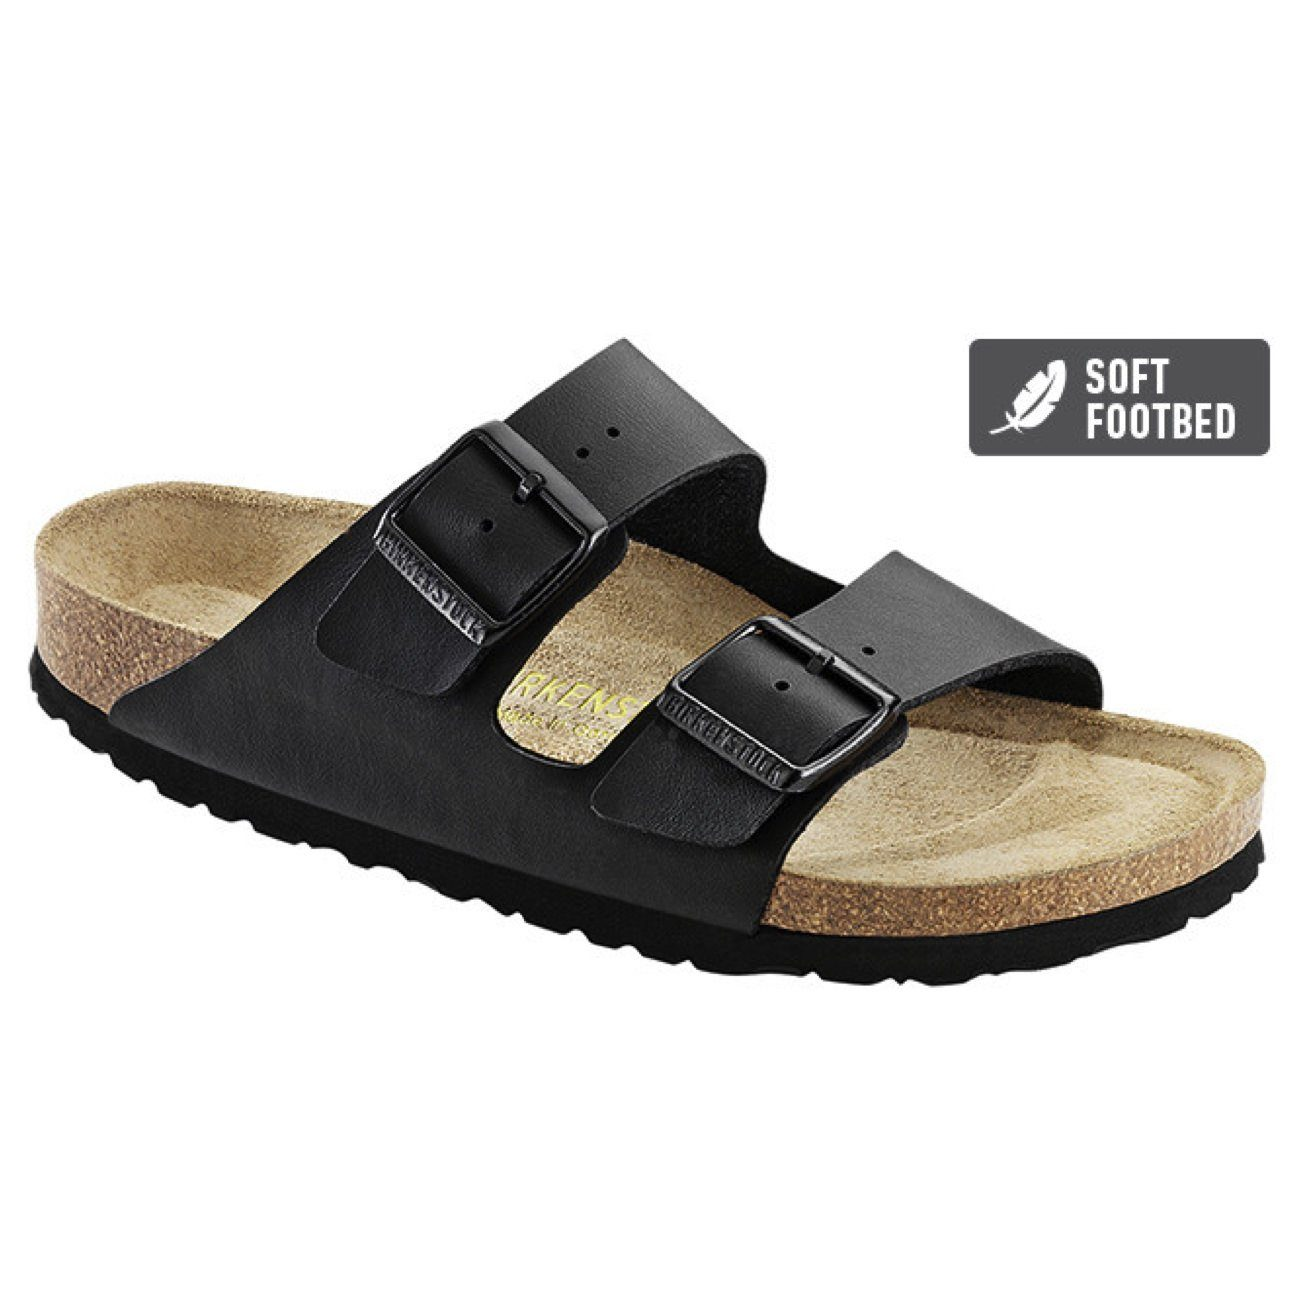 Birkenstock Classic, Arizona, Birko-Flor, Soft Footbed, Regular Fit, Black Sandals Birkenstock Classic Black 35